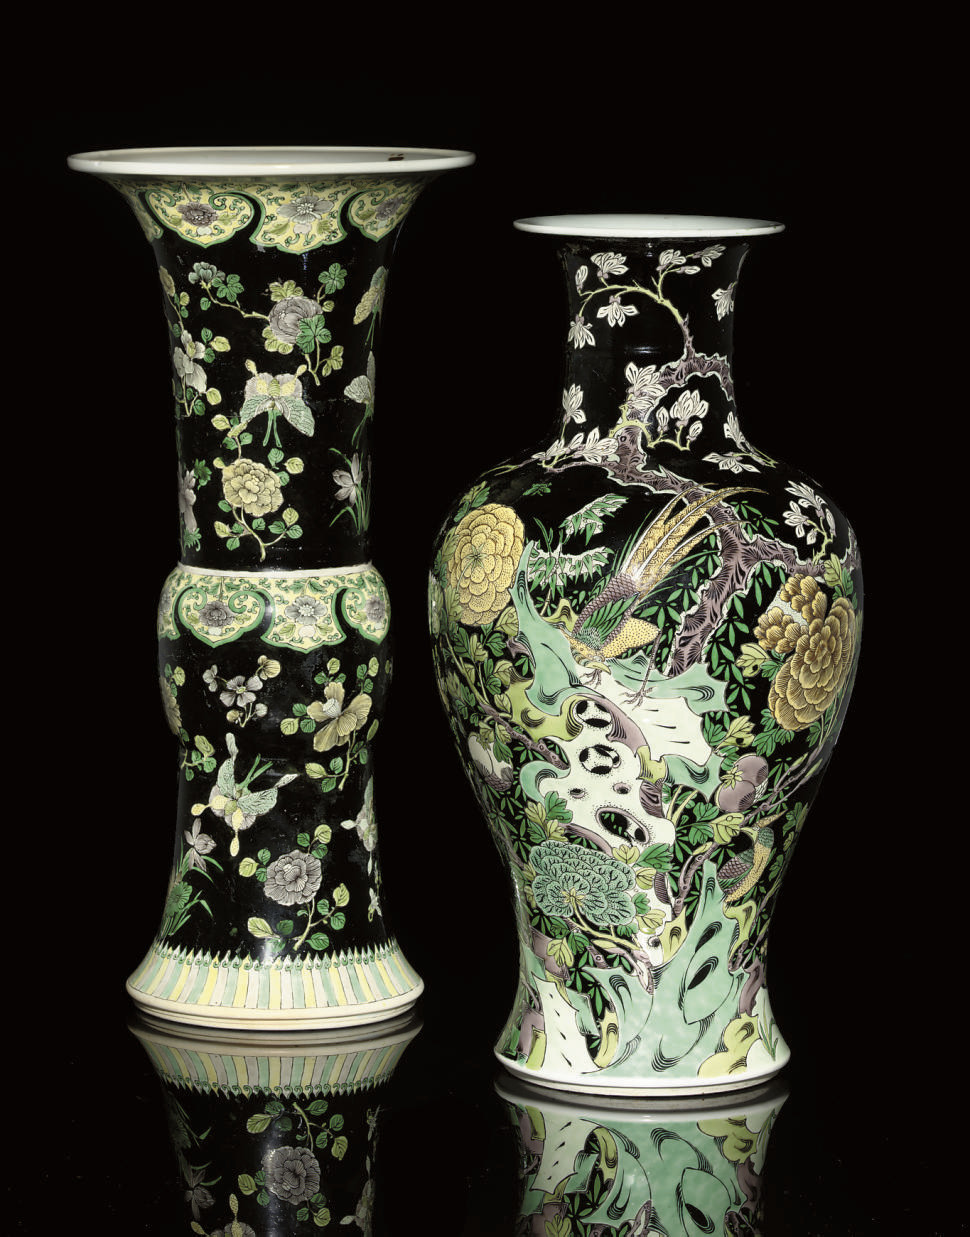 TWO FAMILLE NOIRE VASES, 19TH